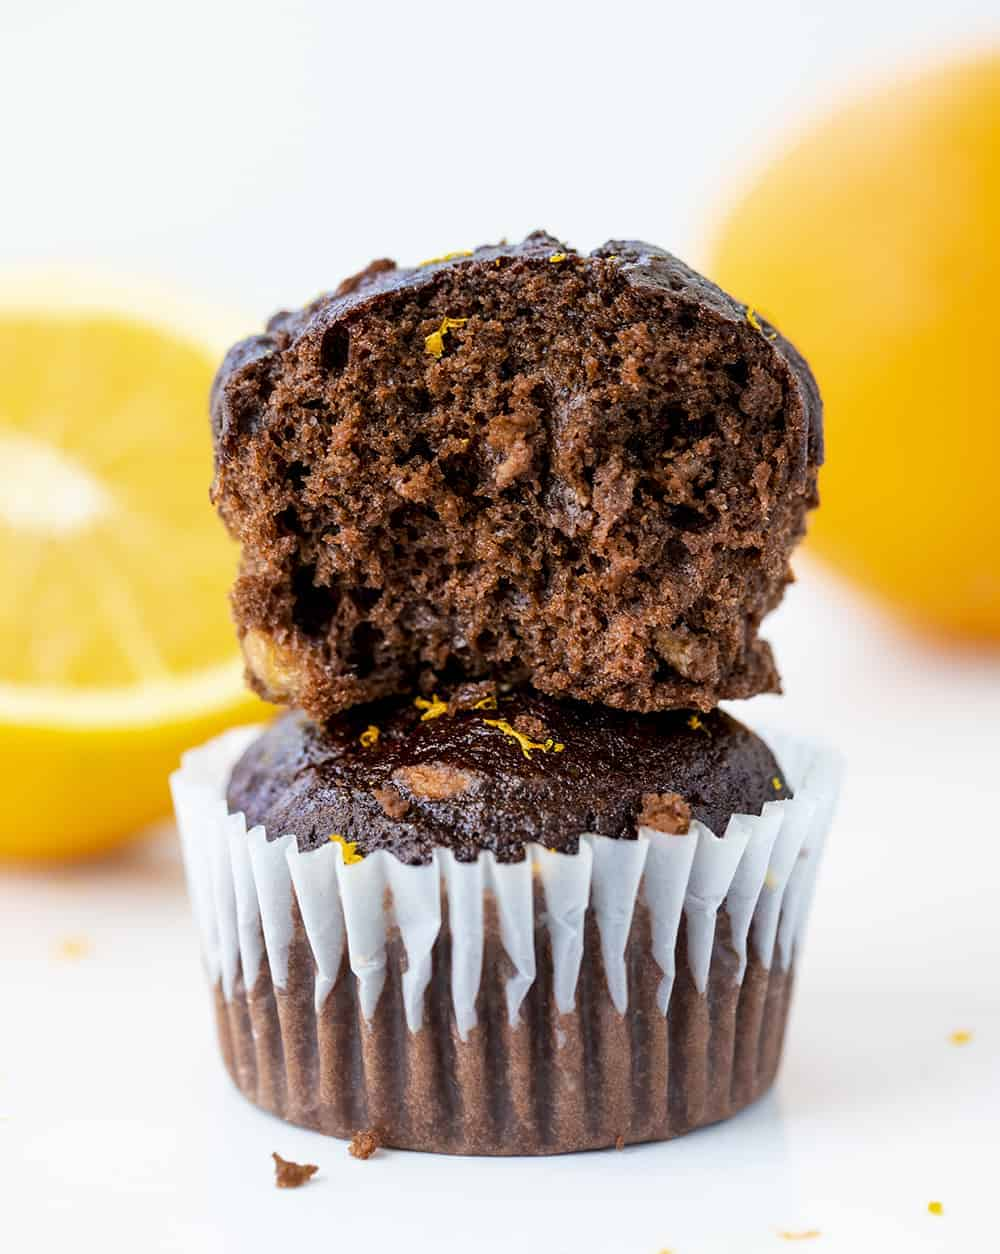 Stacked Chocolate Orange Muffins with One Cut in Half to Show the Inside